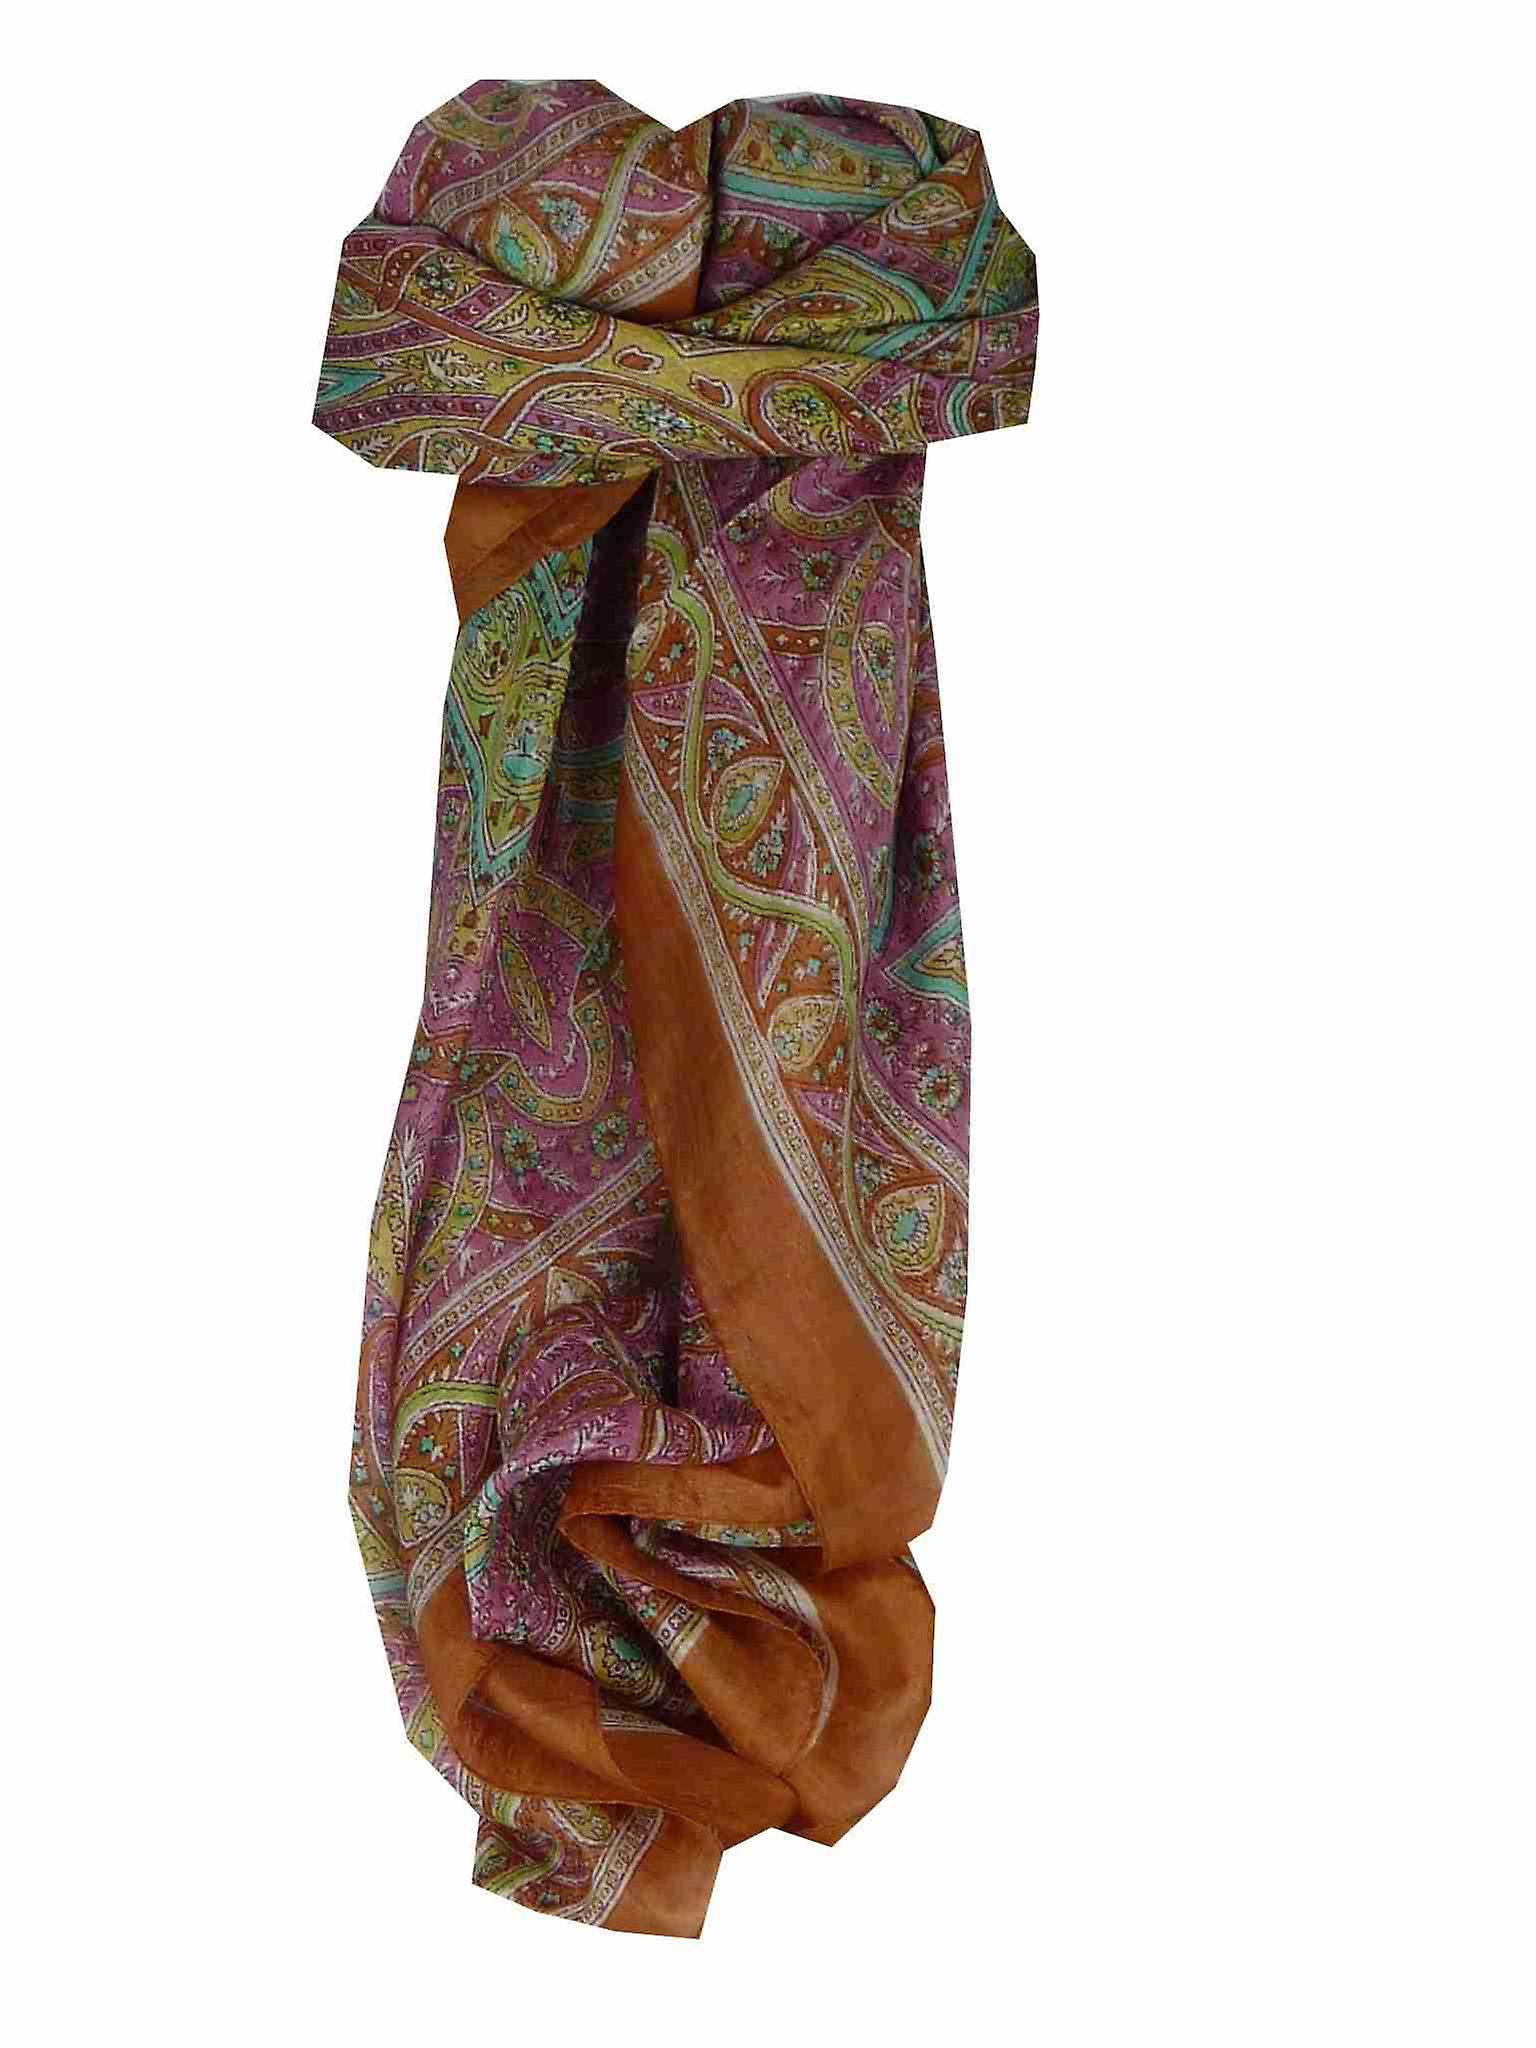 Mulberry Silk Traditional Square Scarf Yamuna Copper by Pashmina & Silk